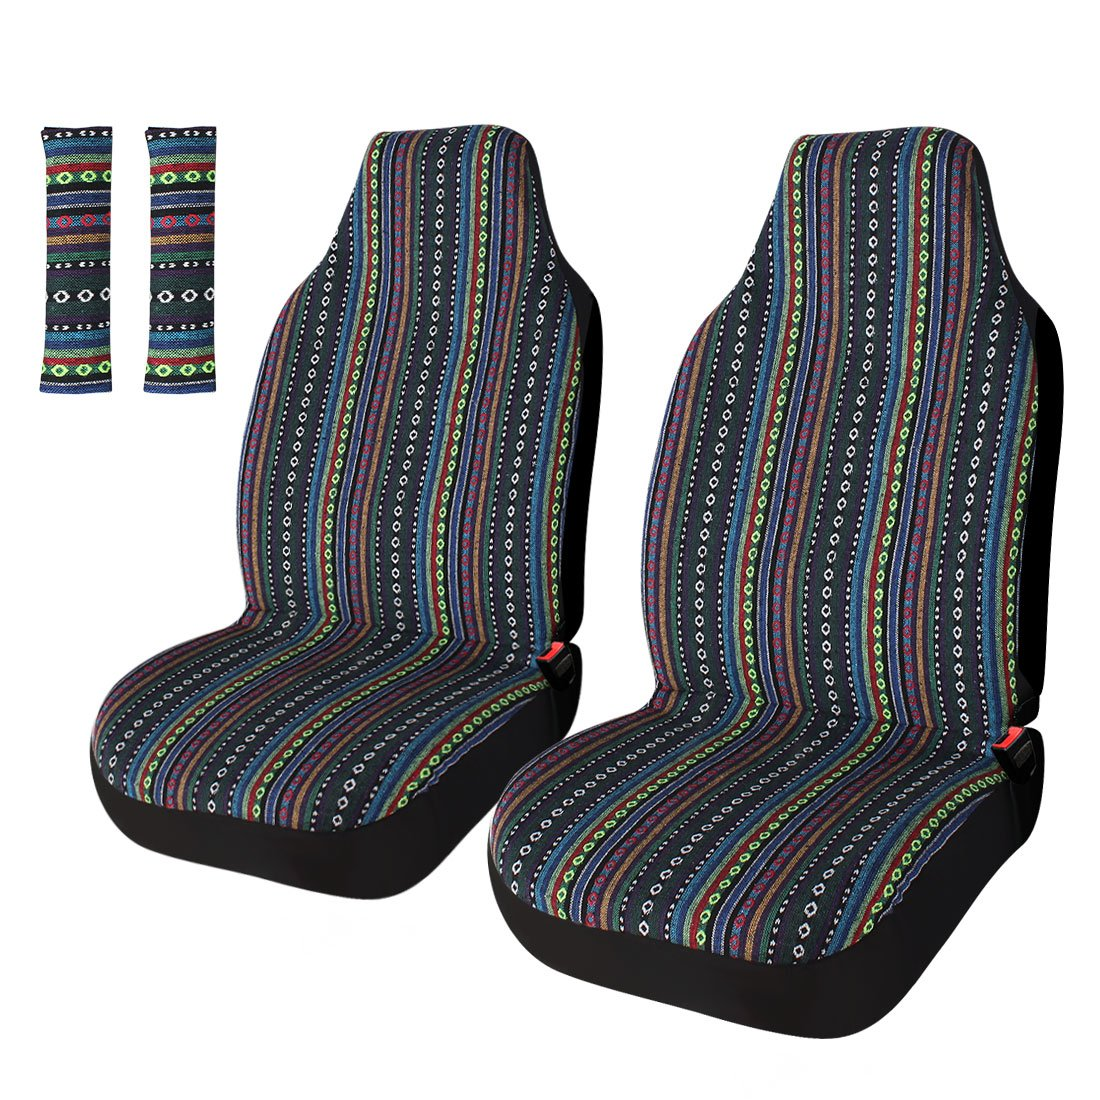 Copap Universal Stripe Colorful 4pc Front Seat Covers Saddle Blanket Baja Bucket Seat Cover with Seat-Belt Pad Protectors for Car, Truck & SUV